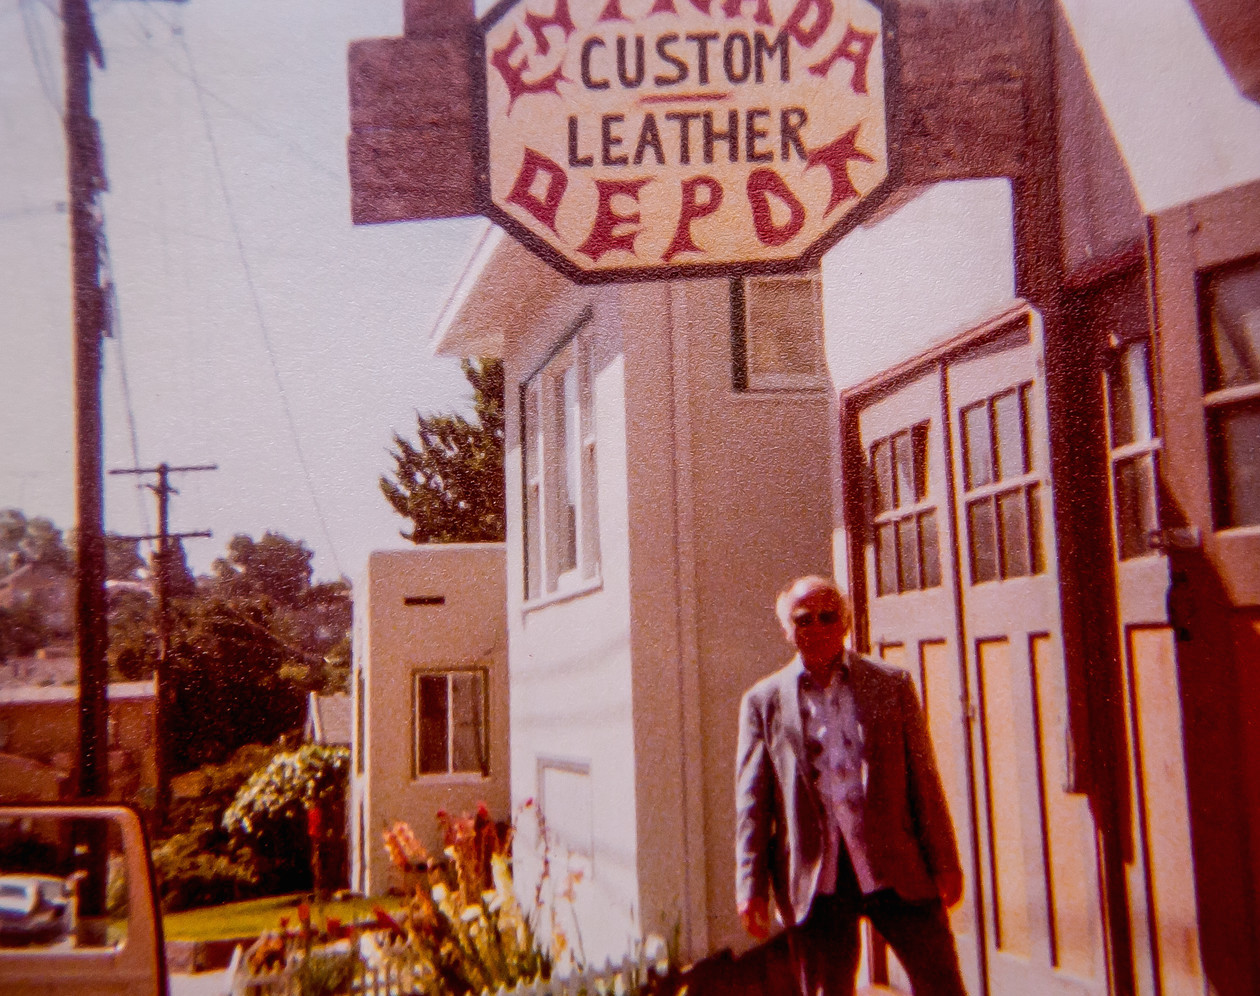 Art's father Al Ratner under leather shop sign.  Photo courtesy of Art Ratner